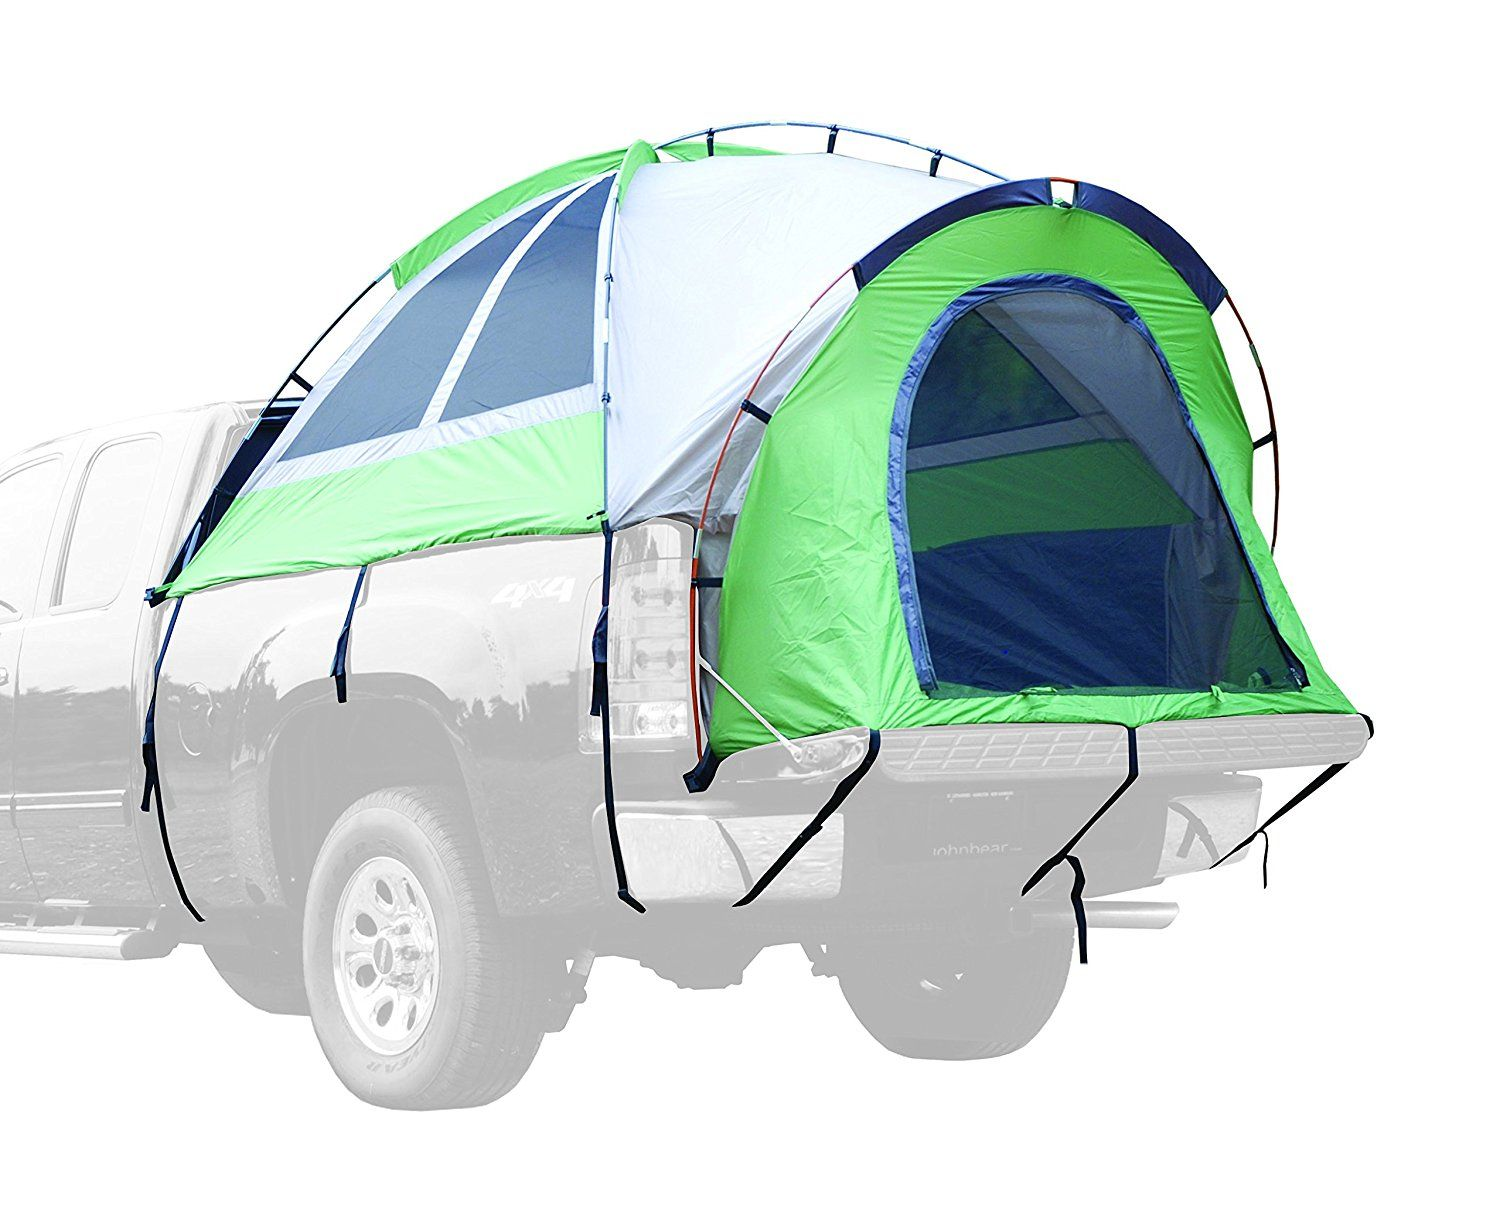 Napier Outdoors Backroadz Truck Tent Insiders Special Review You Cant Miss Read More Camping Gear